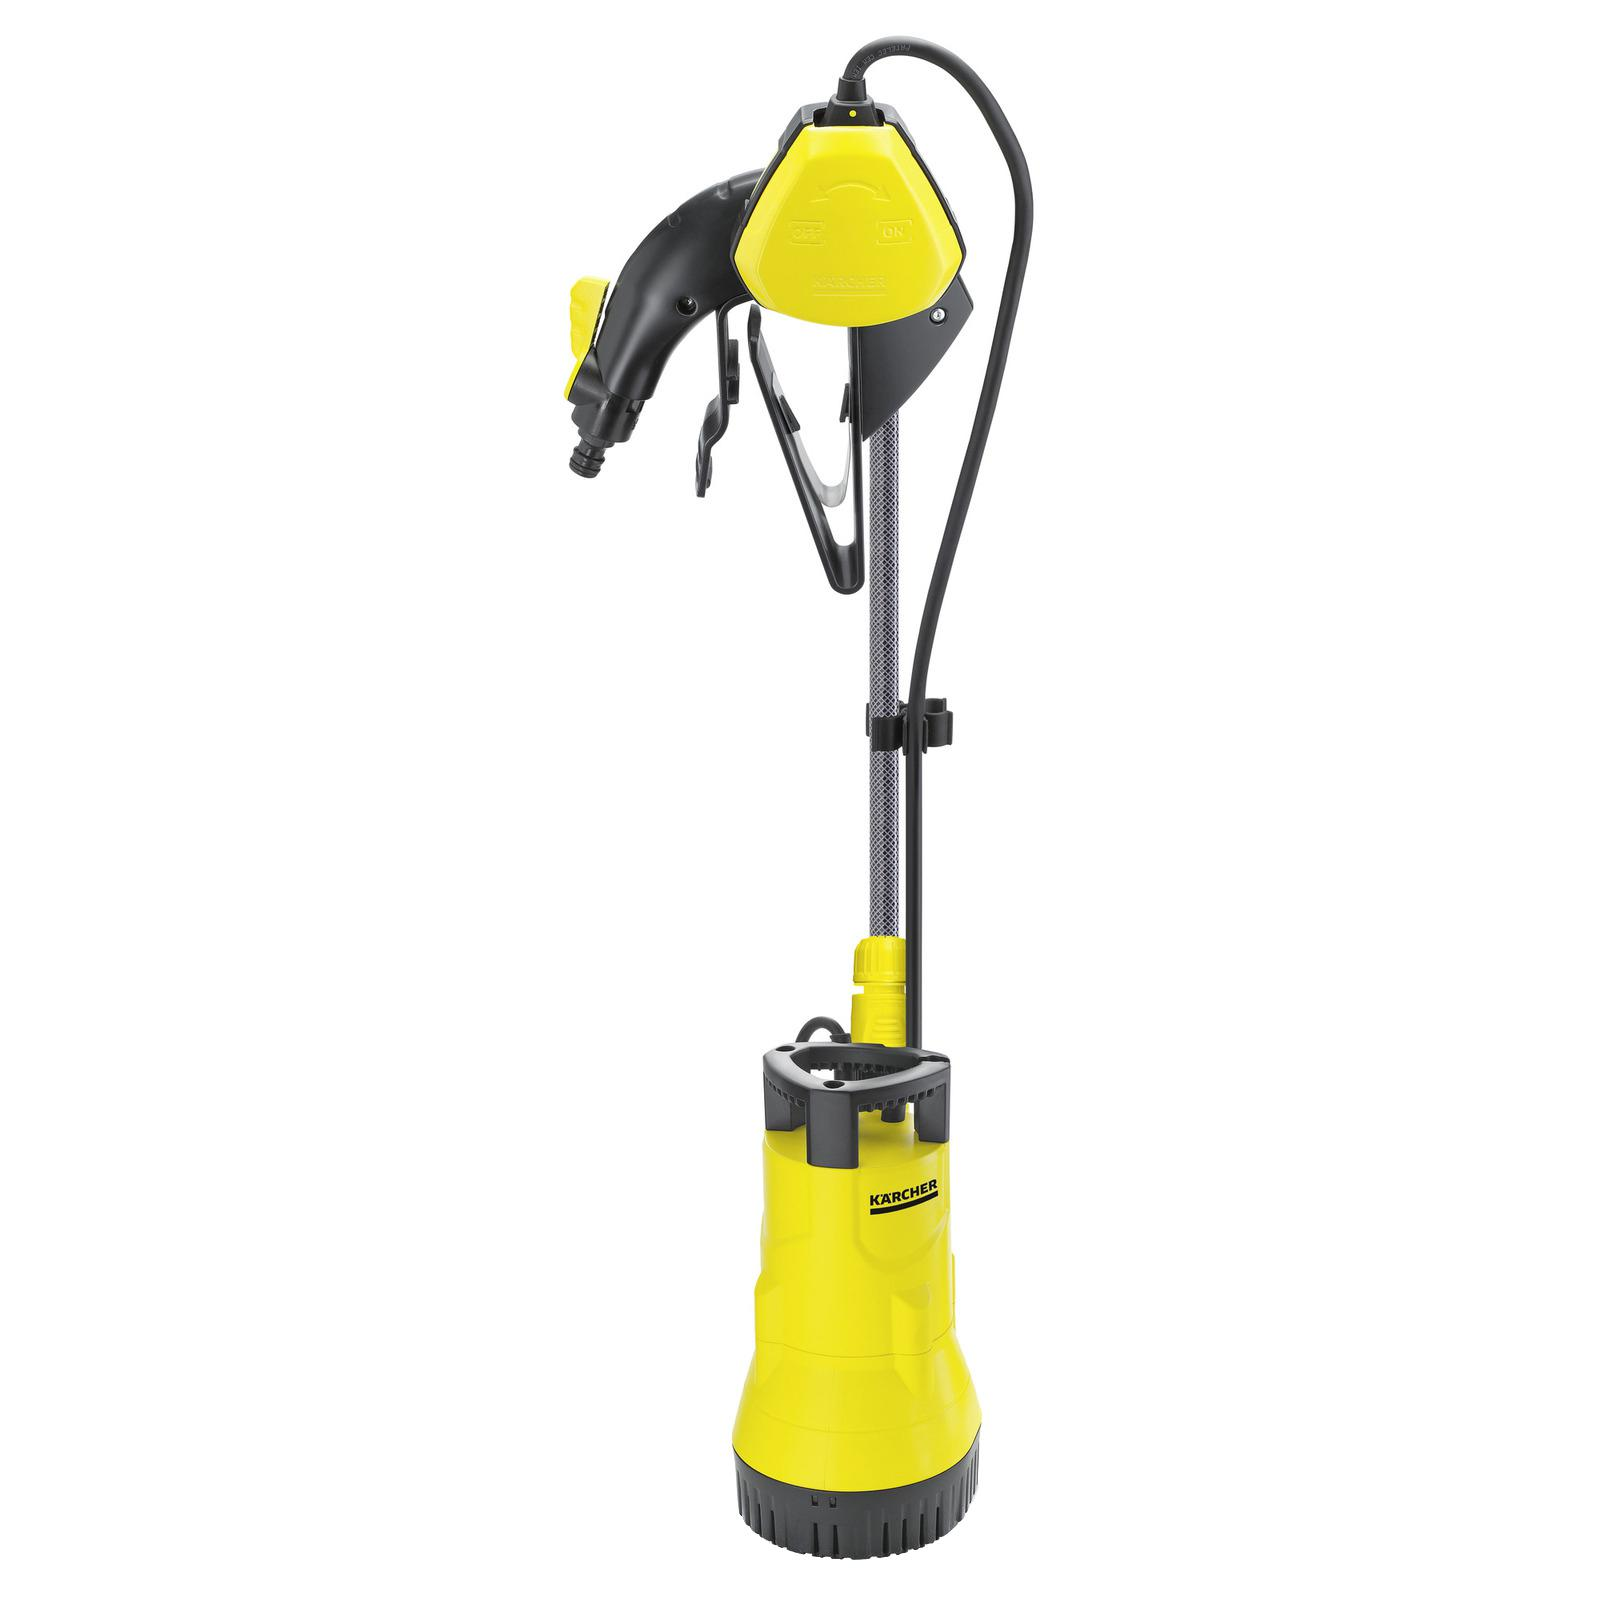 Бочковой насос Karcher Bp 1 barrel насос karcher бытовой bp 7 home garden eco ogic